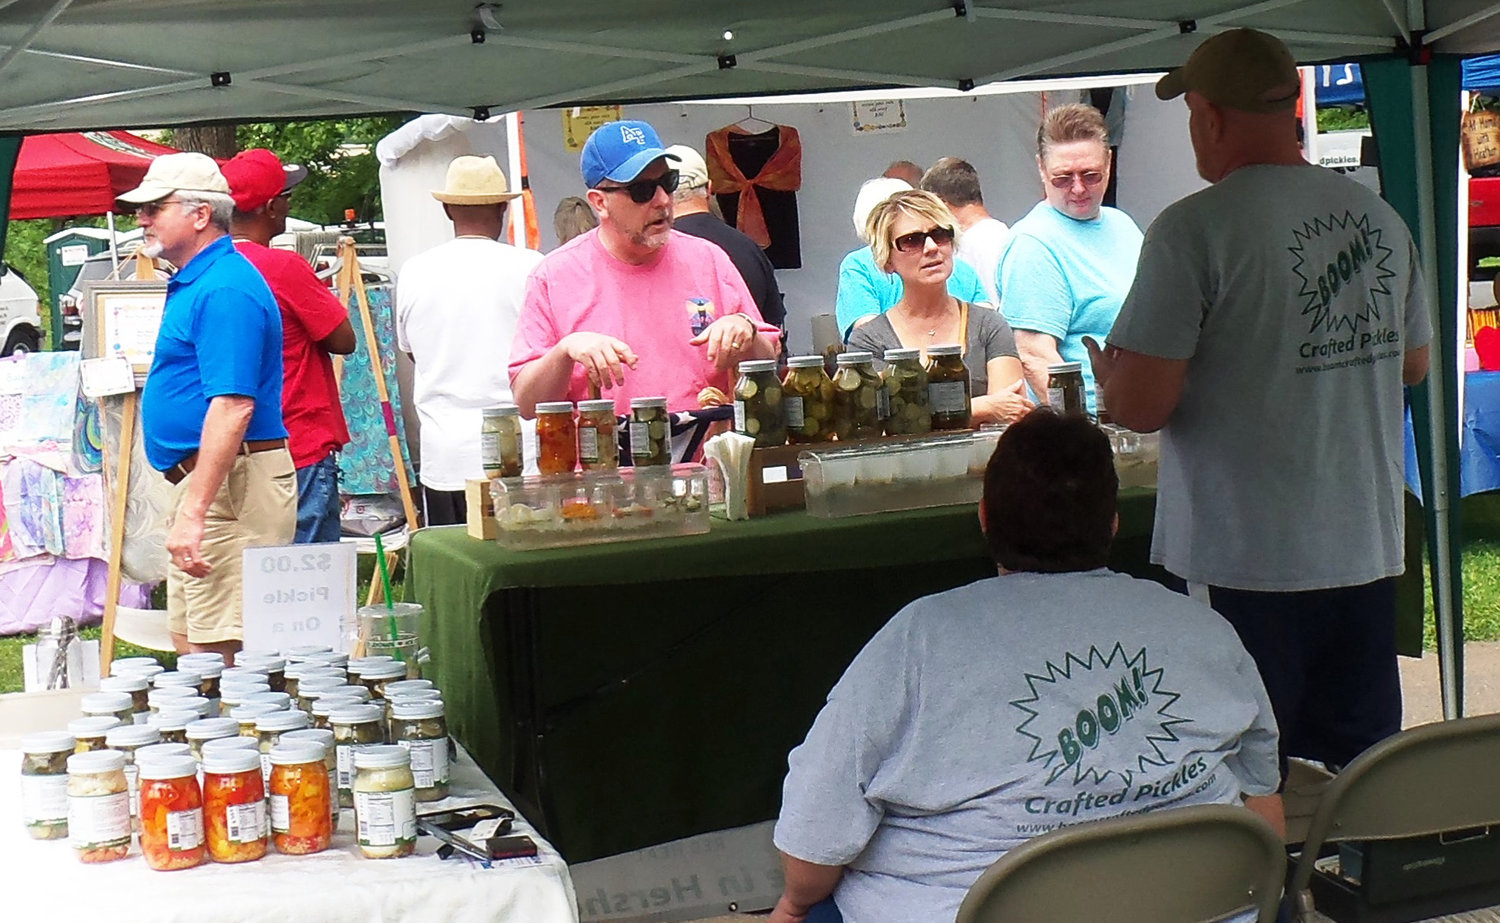 Attendees at the Middletown Area Historical Society's 44th annual Arts & Crafts Fair check out the selections at Boom Crafted Pickles stand. The business is run by Michelle Handley of Hershey.